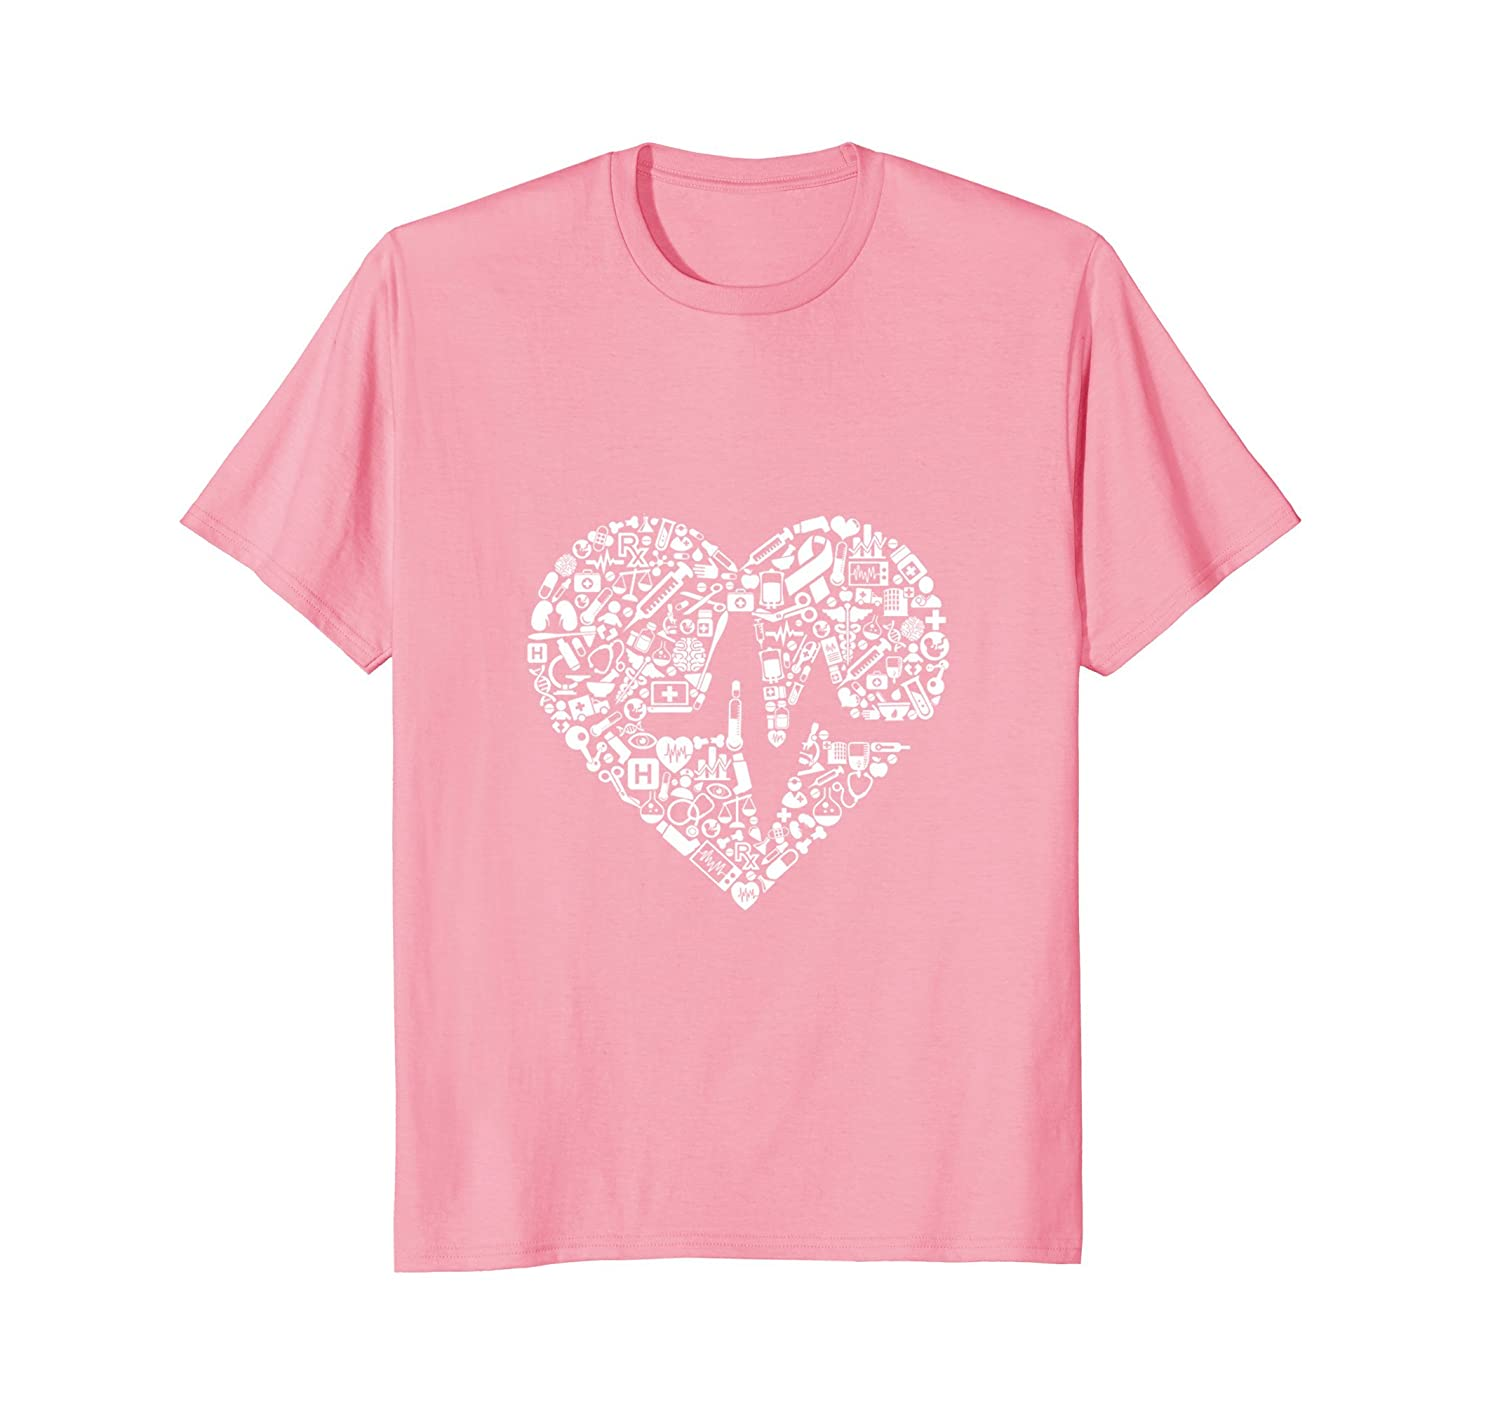 Medical Doctor Nurse Heart Tee Teleout Cool T Shirt Designs For